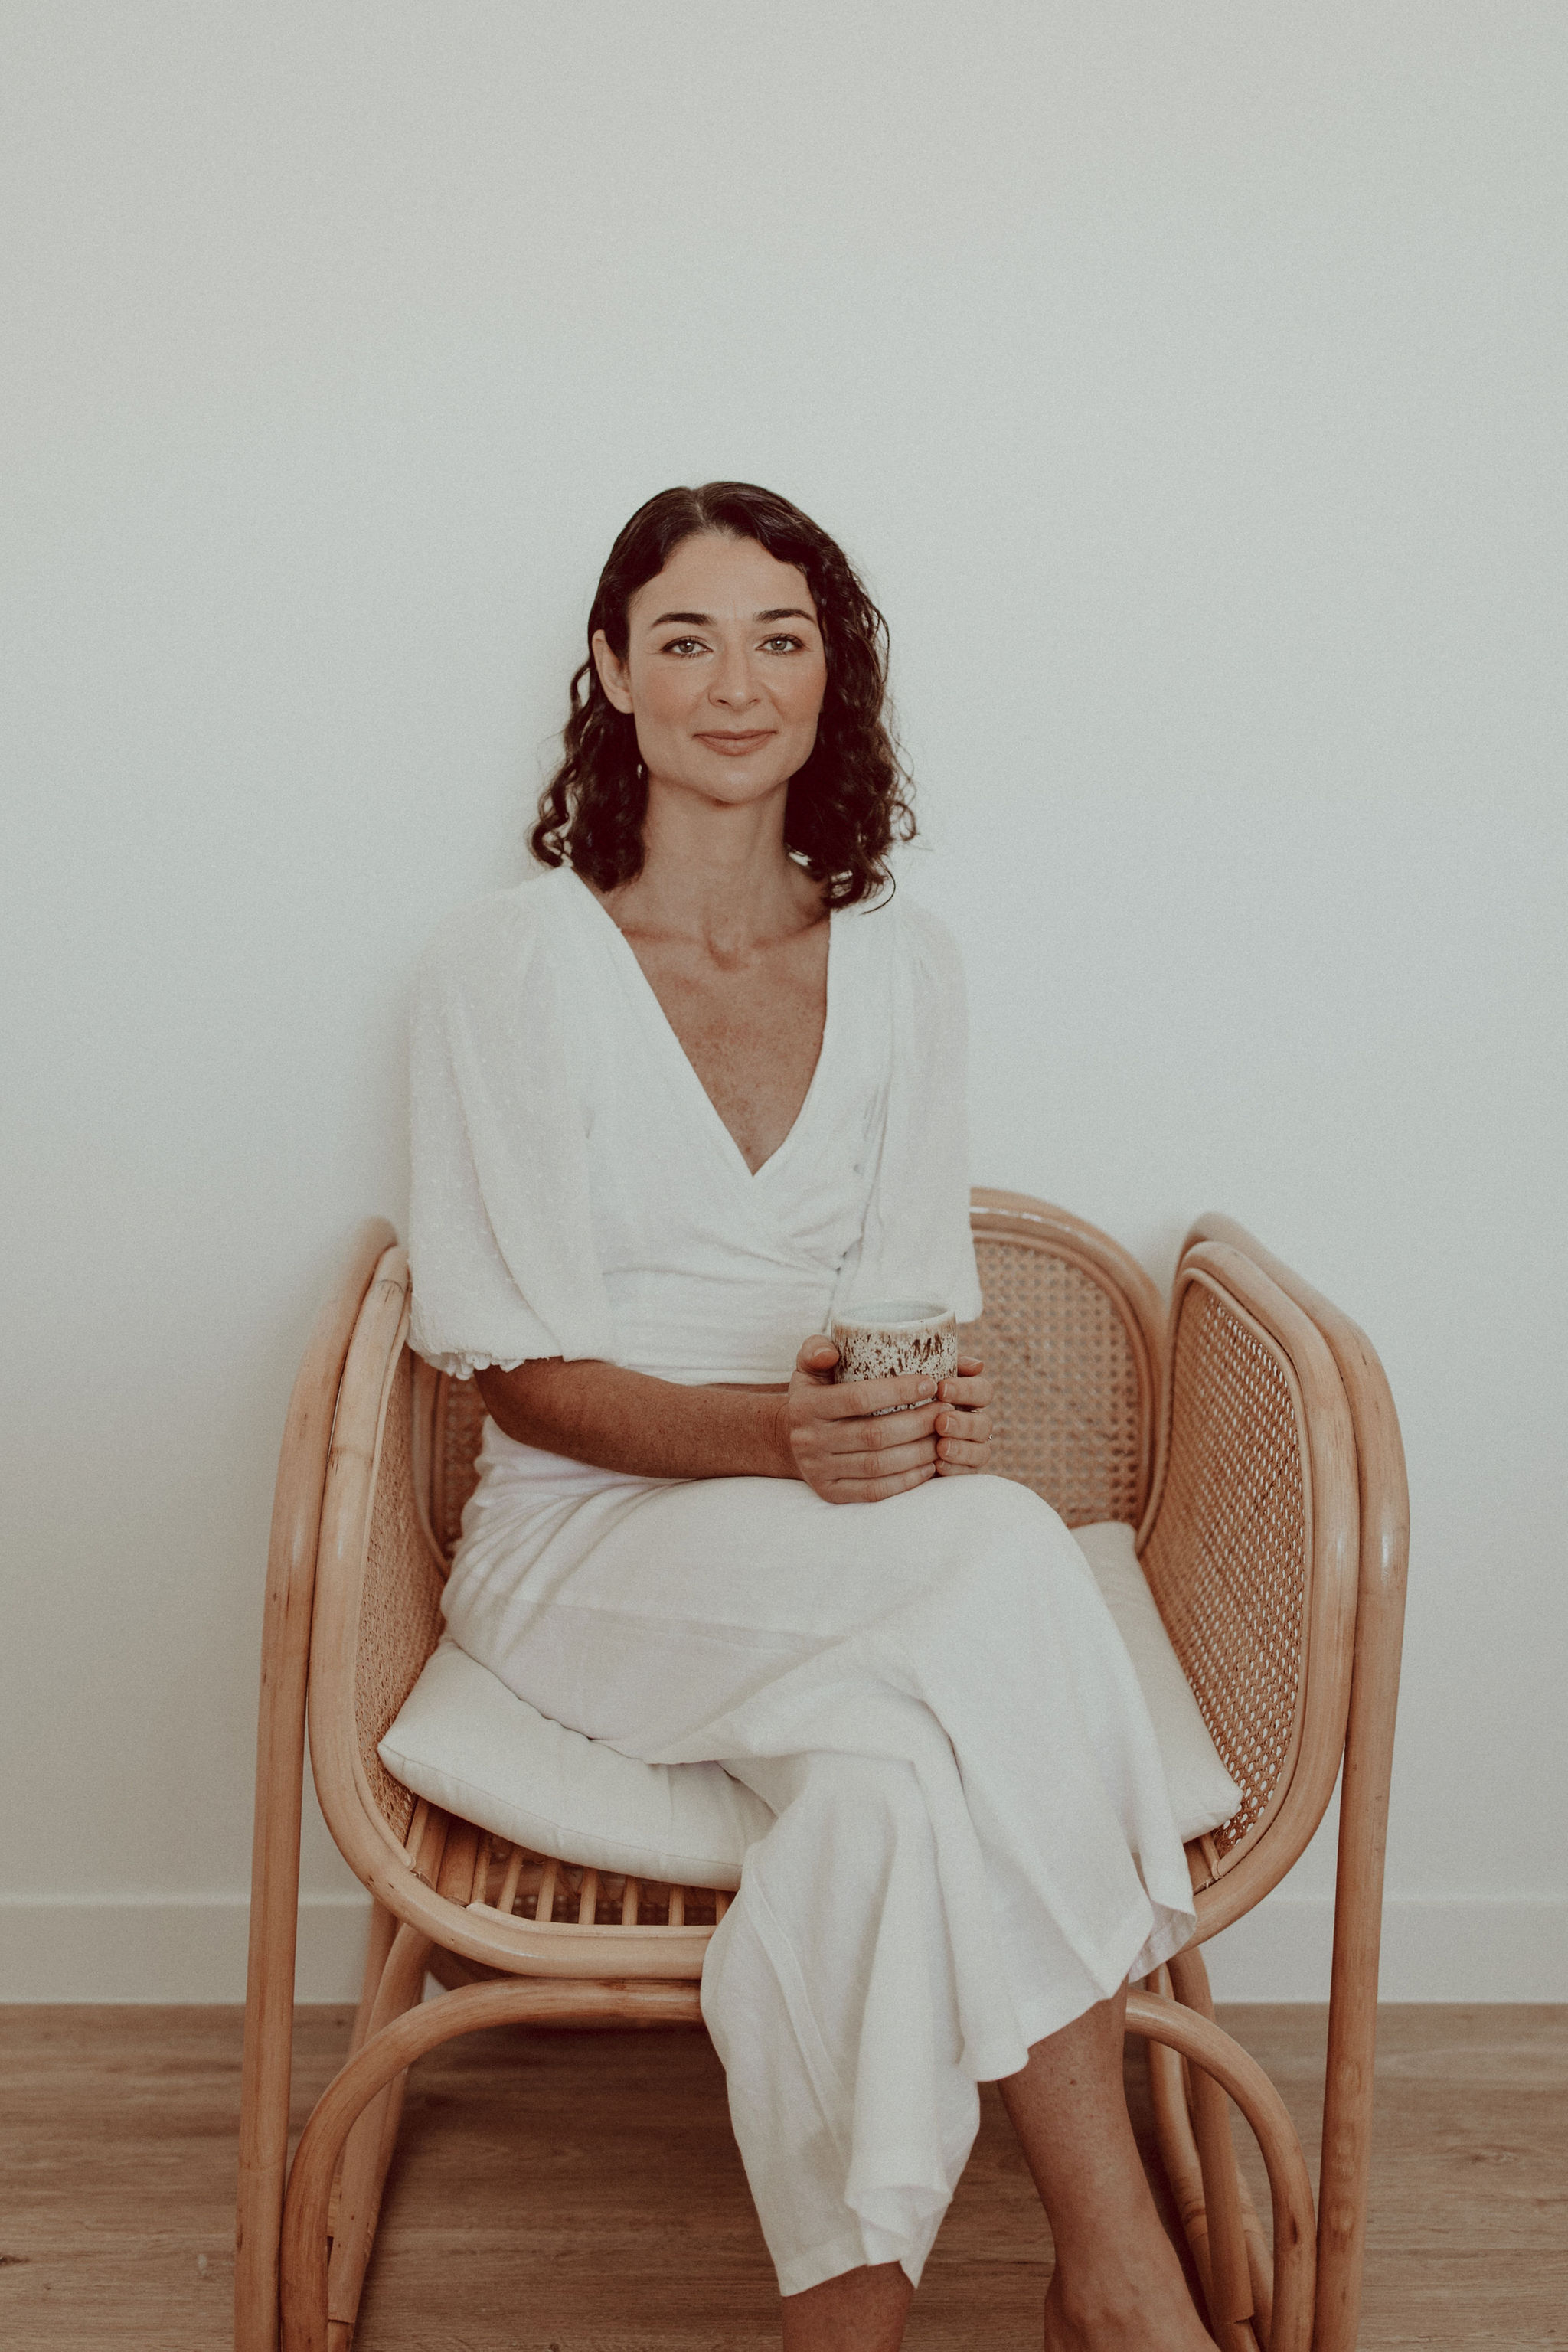 Eva Rose sitting in a chair